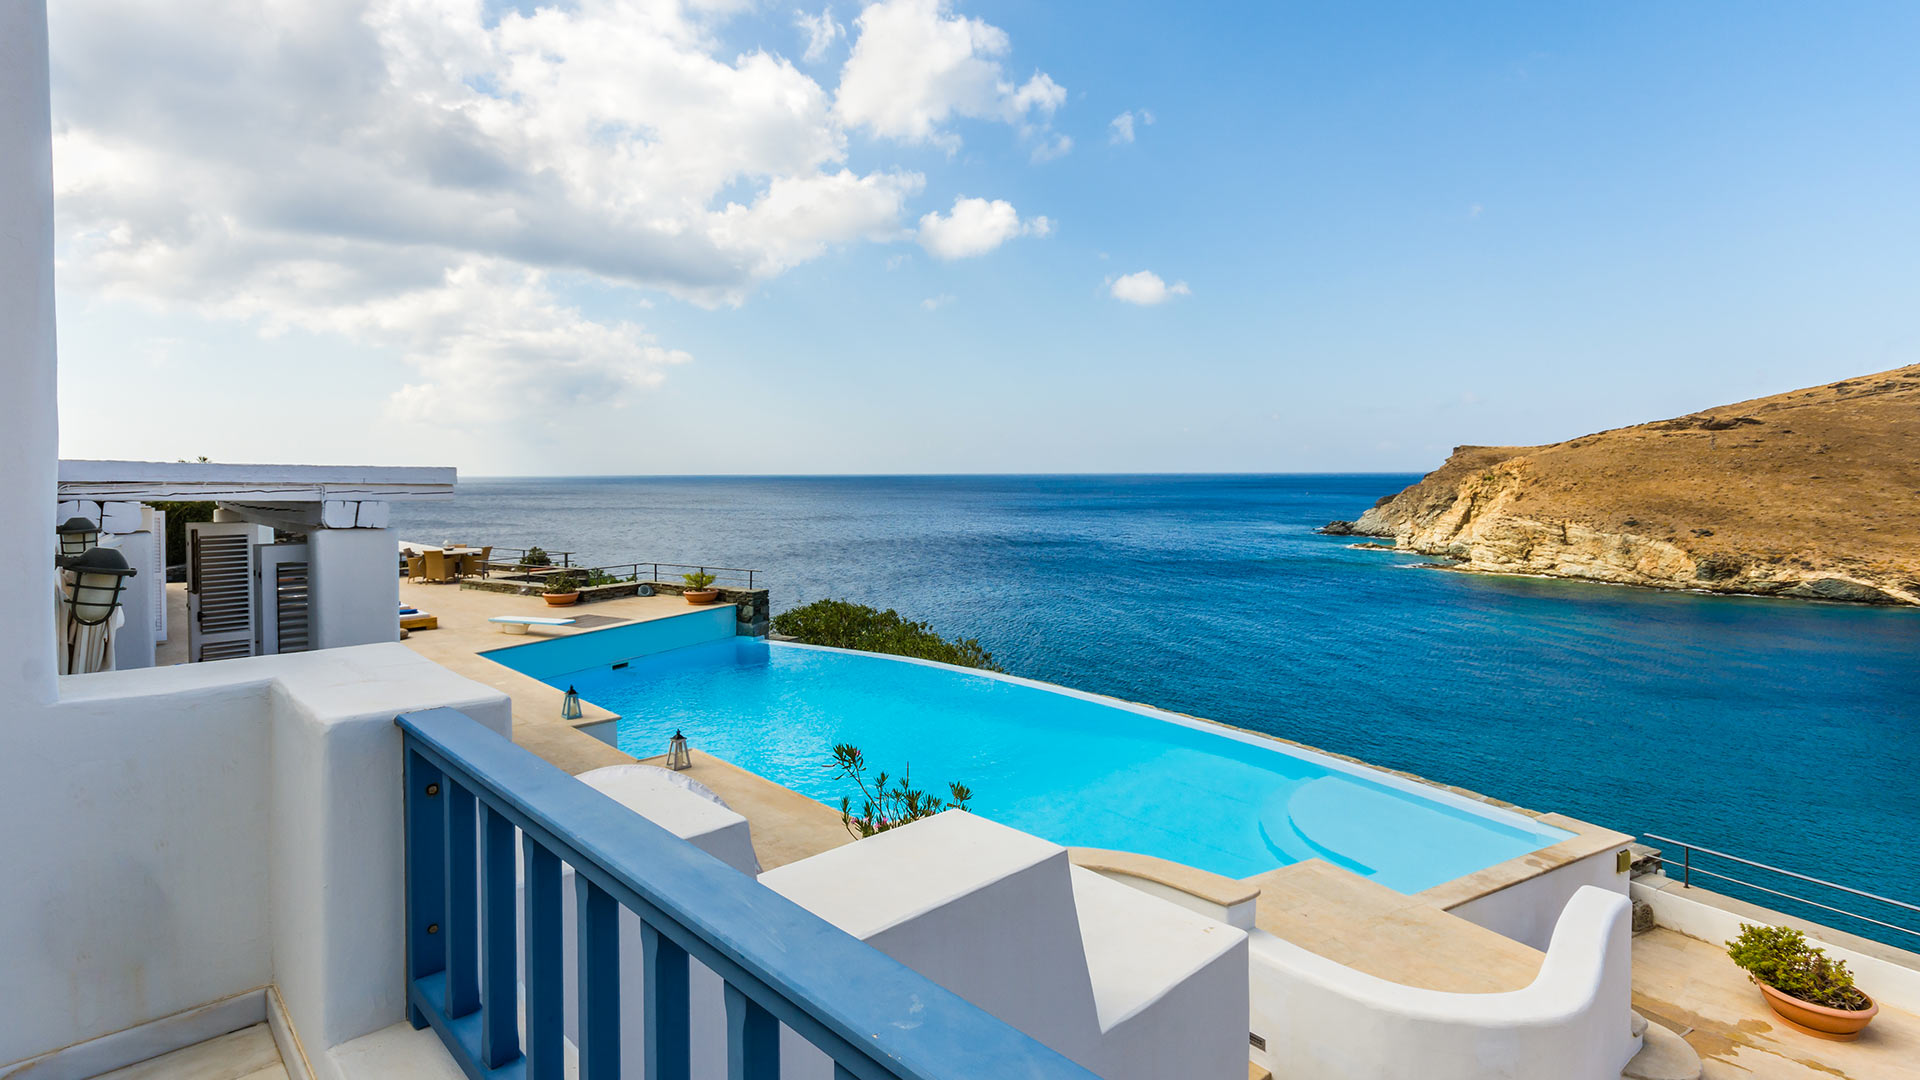 Villa Villa Blurasa, Rental in Cyclades - Other islands